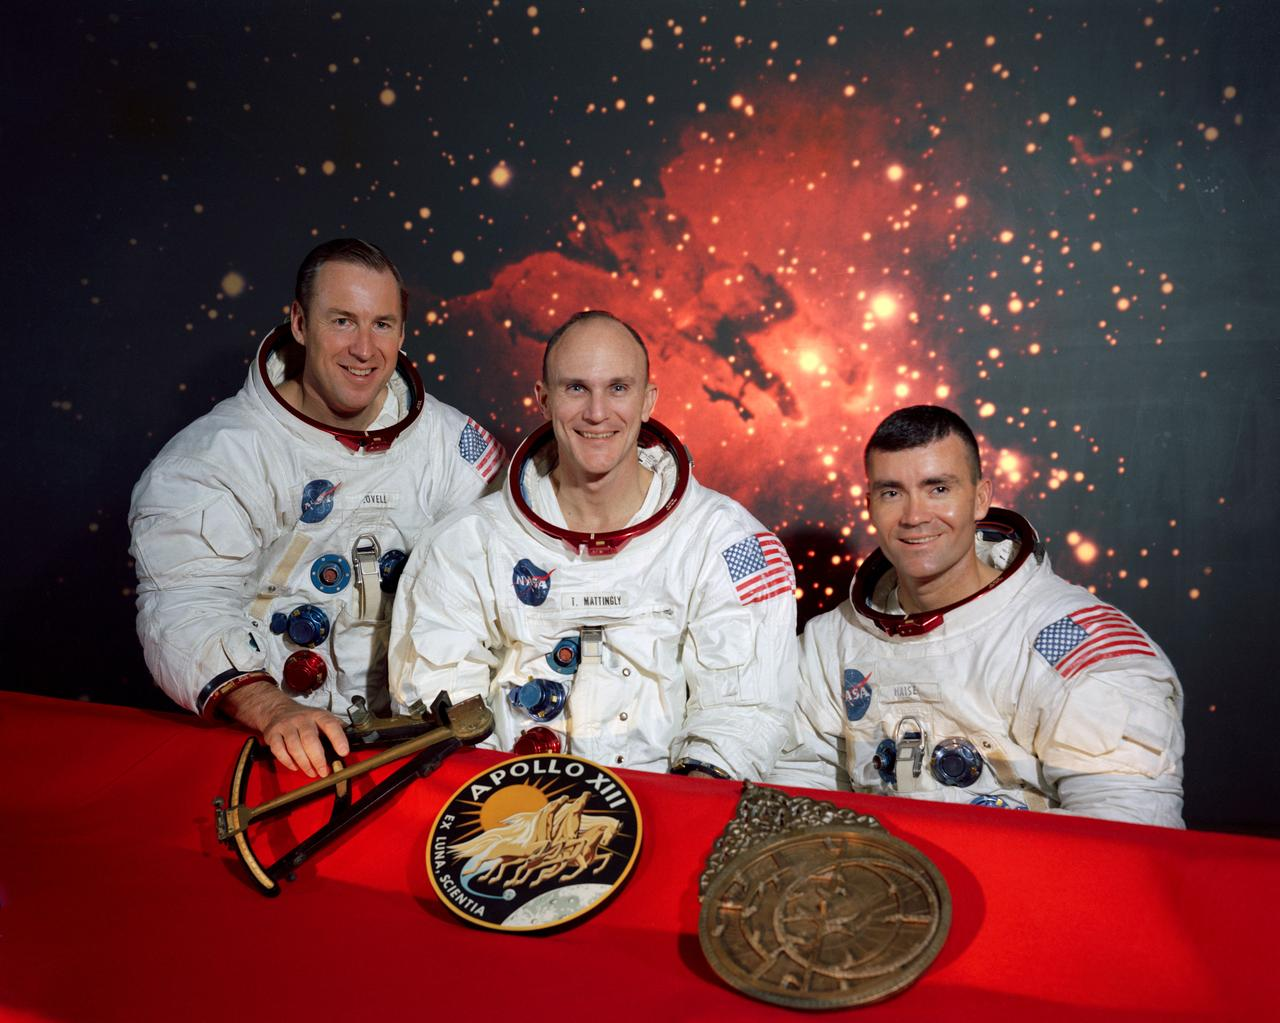 3 apollo 13 crew members posing in their neat space suits